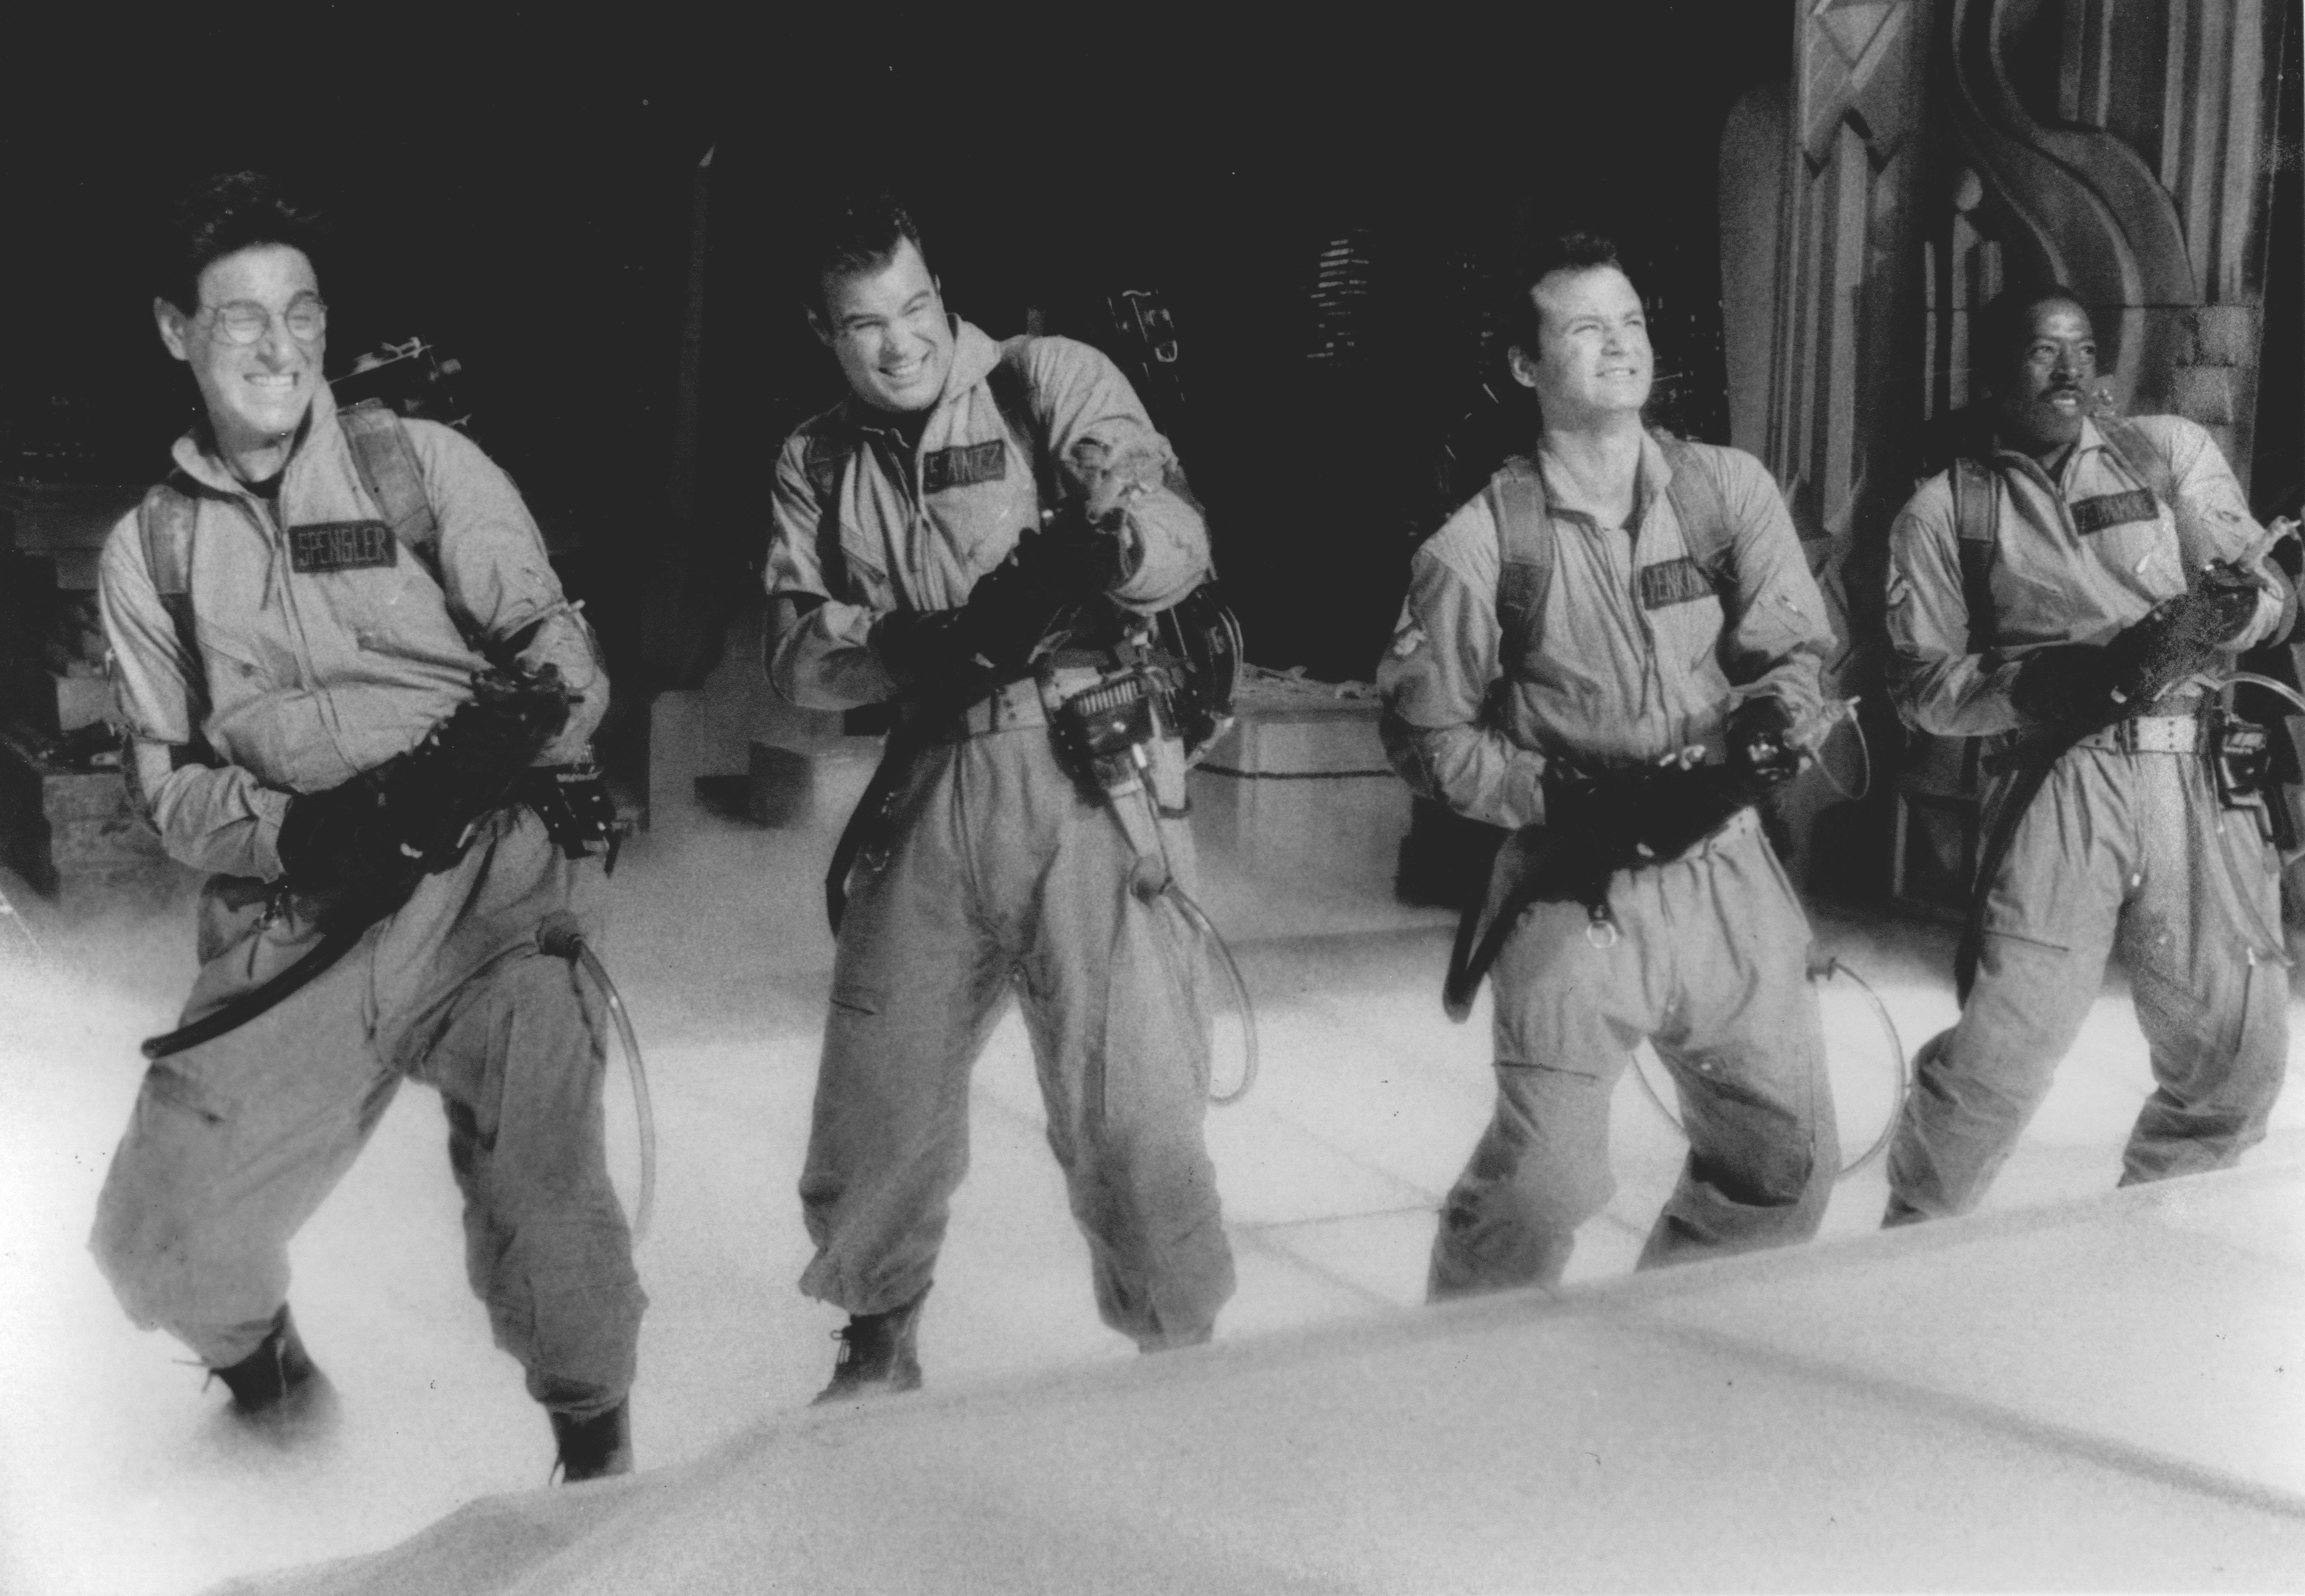 Ghostbusters                      Harold Ramis, Dan Aykroyd, Bill Murray and Ernie Hudson take care not to cross the streams as they fire on evil spirits menacing New York City.